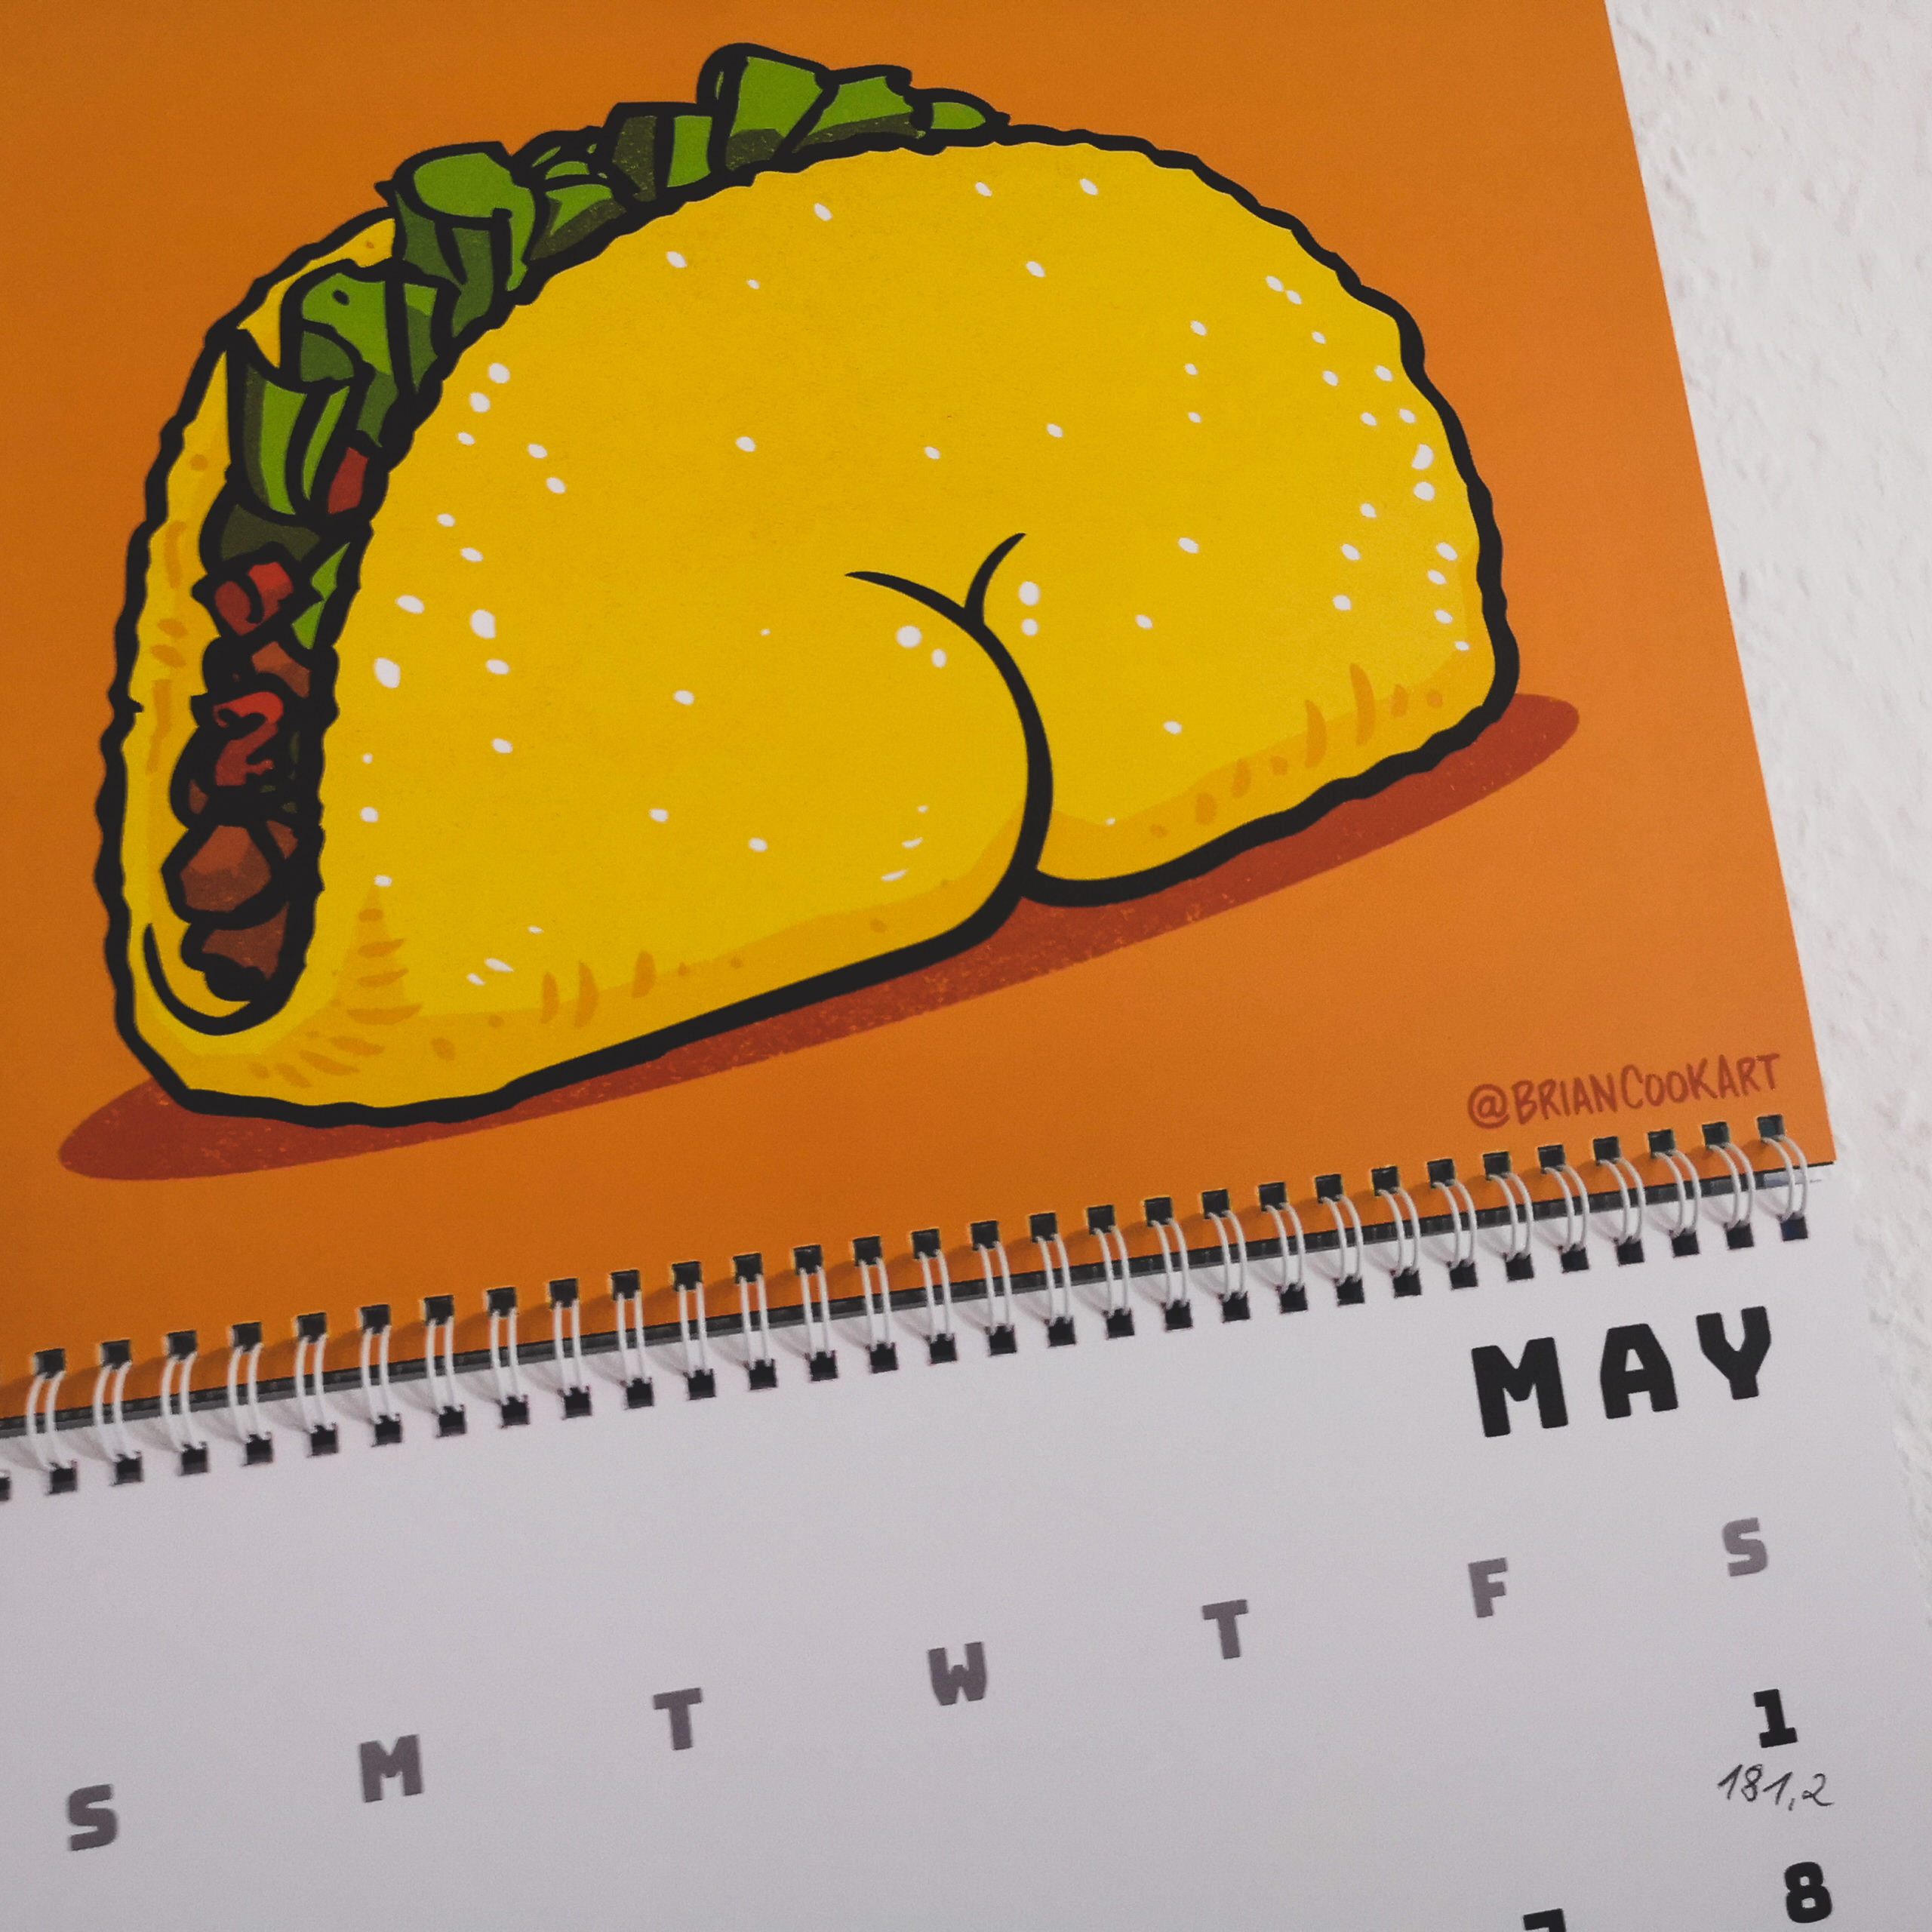 Kalender Butts on Things Brian Cook - Gewichtsupdate Mai 2021